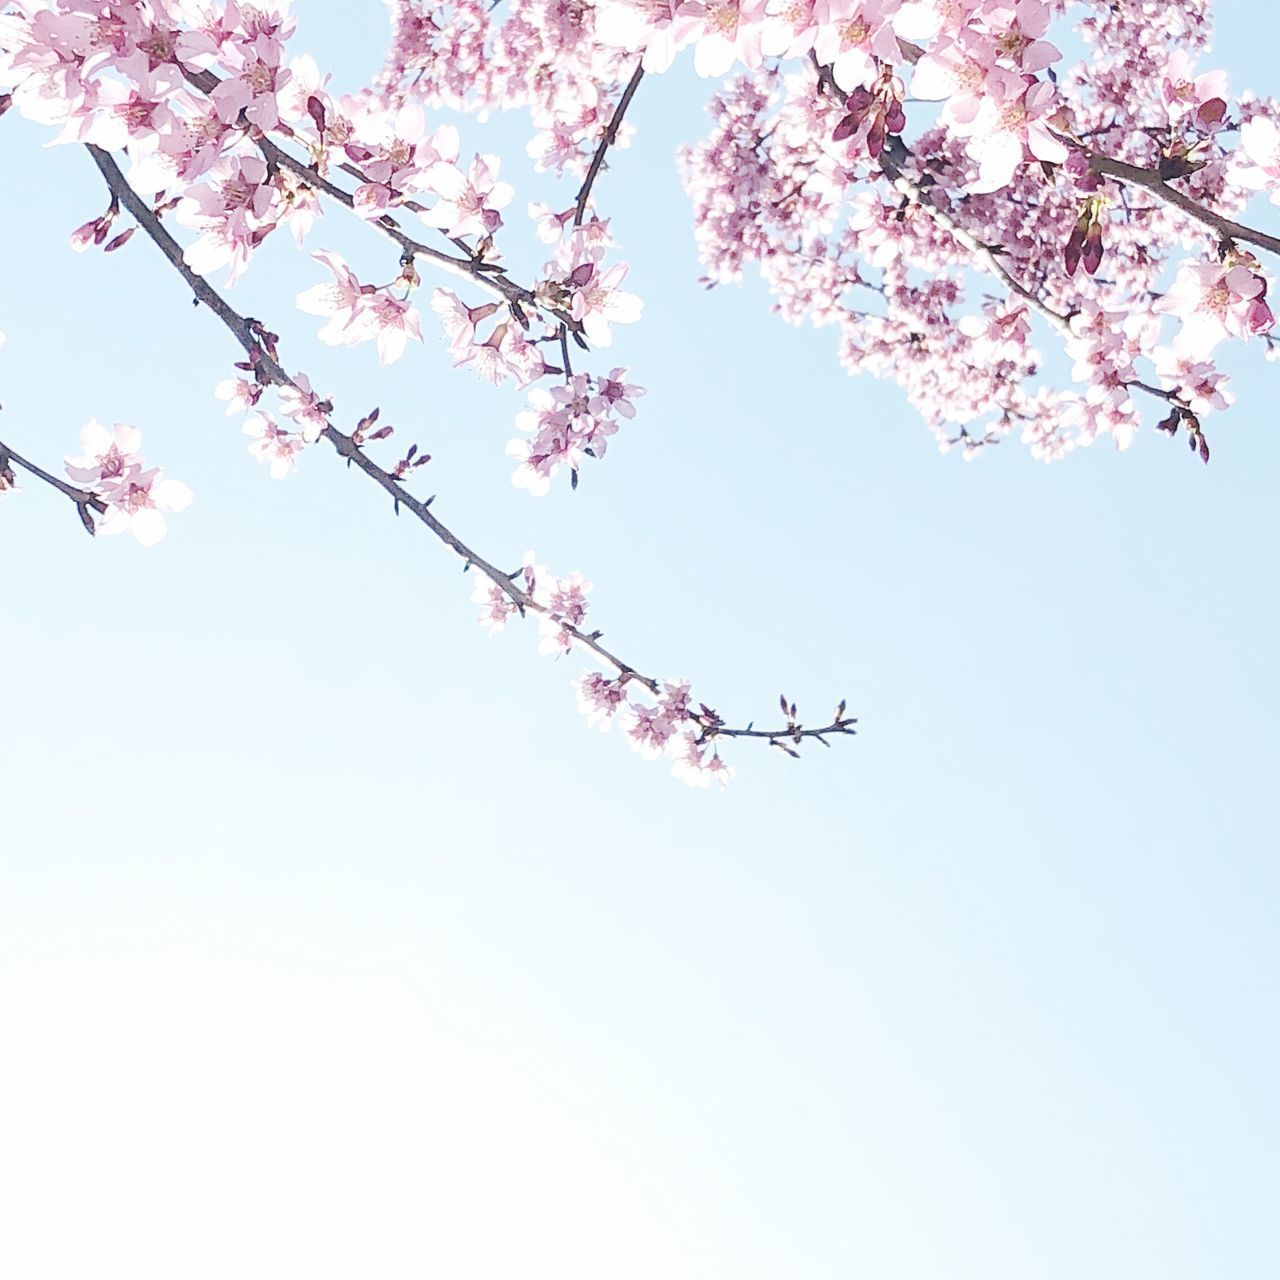 flower, flowering plant, plant, sky, low angle view, pink color, tree, fragility, beauty in nature, blossom, nature, growth, freshness, cherry blossom, branch, springtime, vulnerability, day, no people, cherry tree, outdoors, flower head, spring